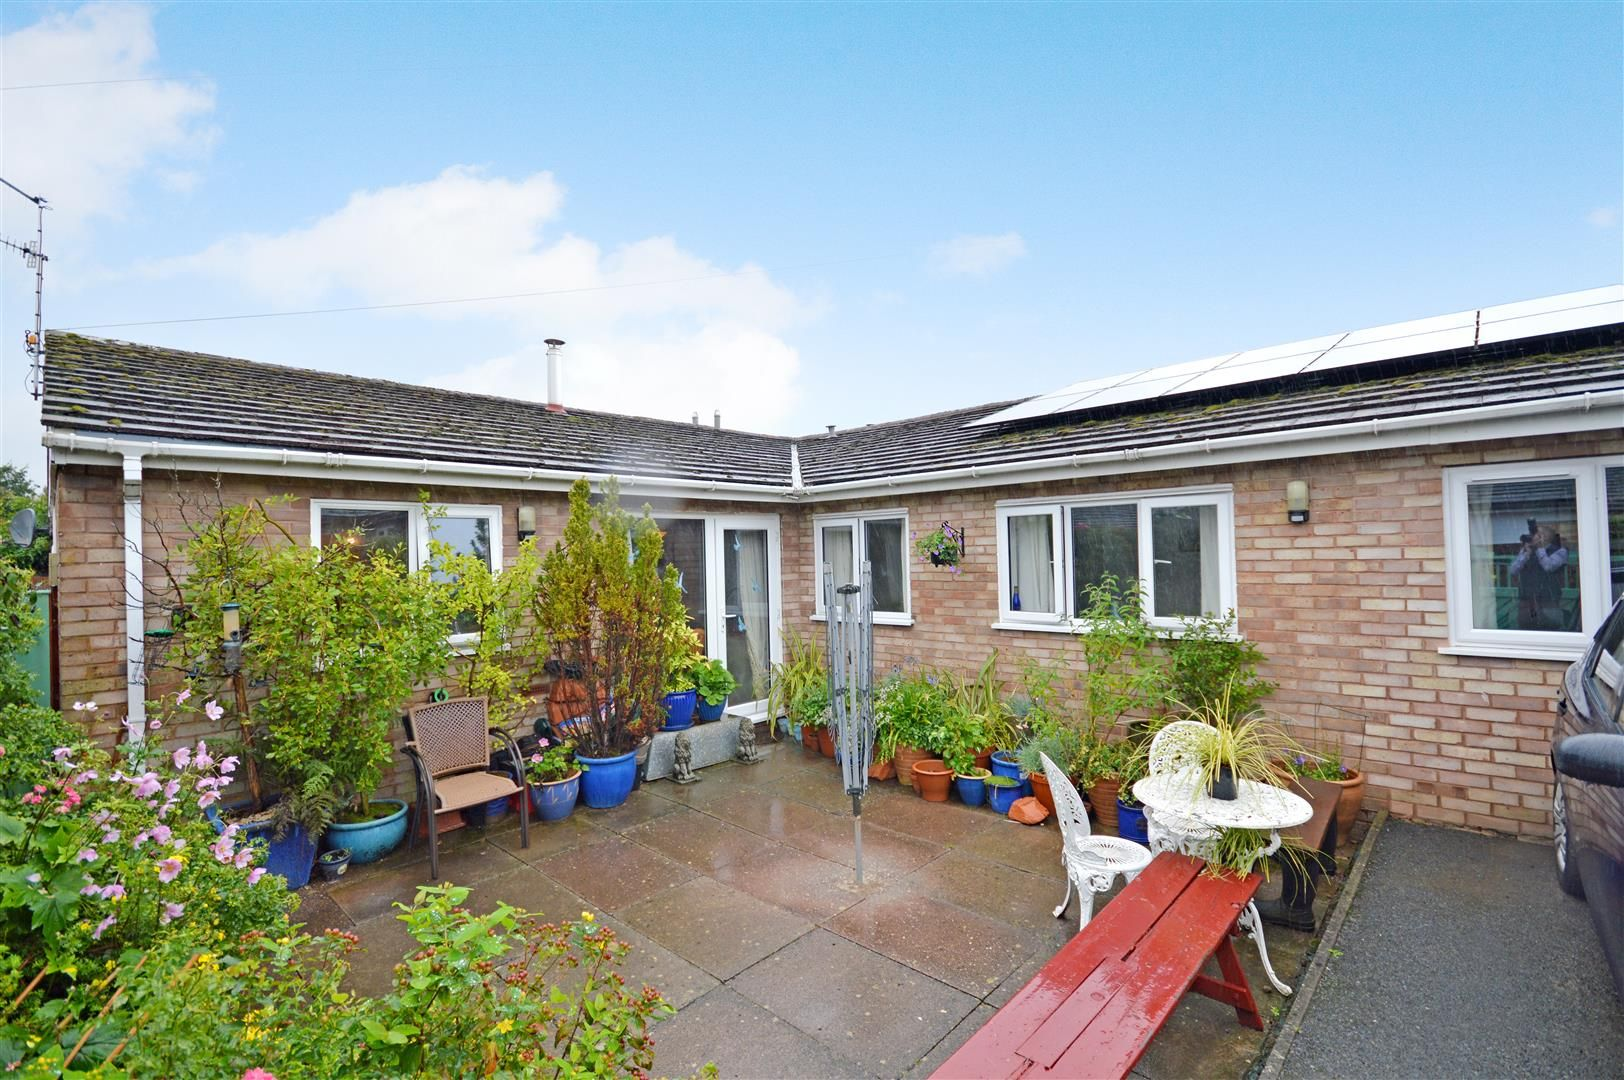 3 bed semi-detached-bungalow for sale in Peterchurch, HR2